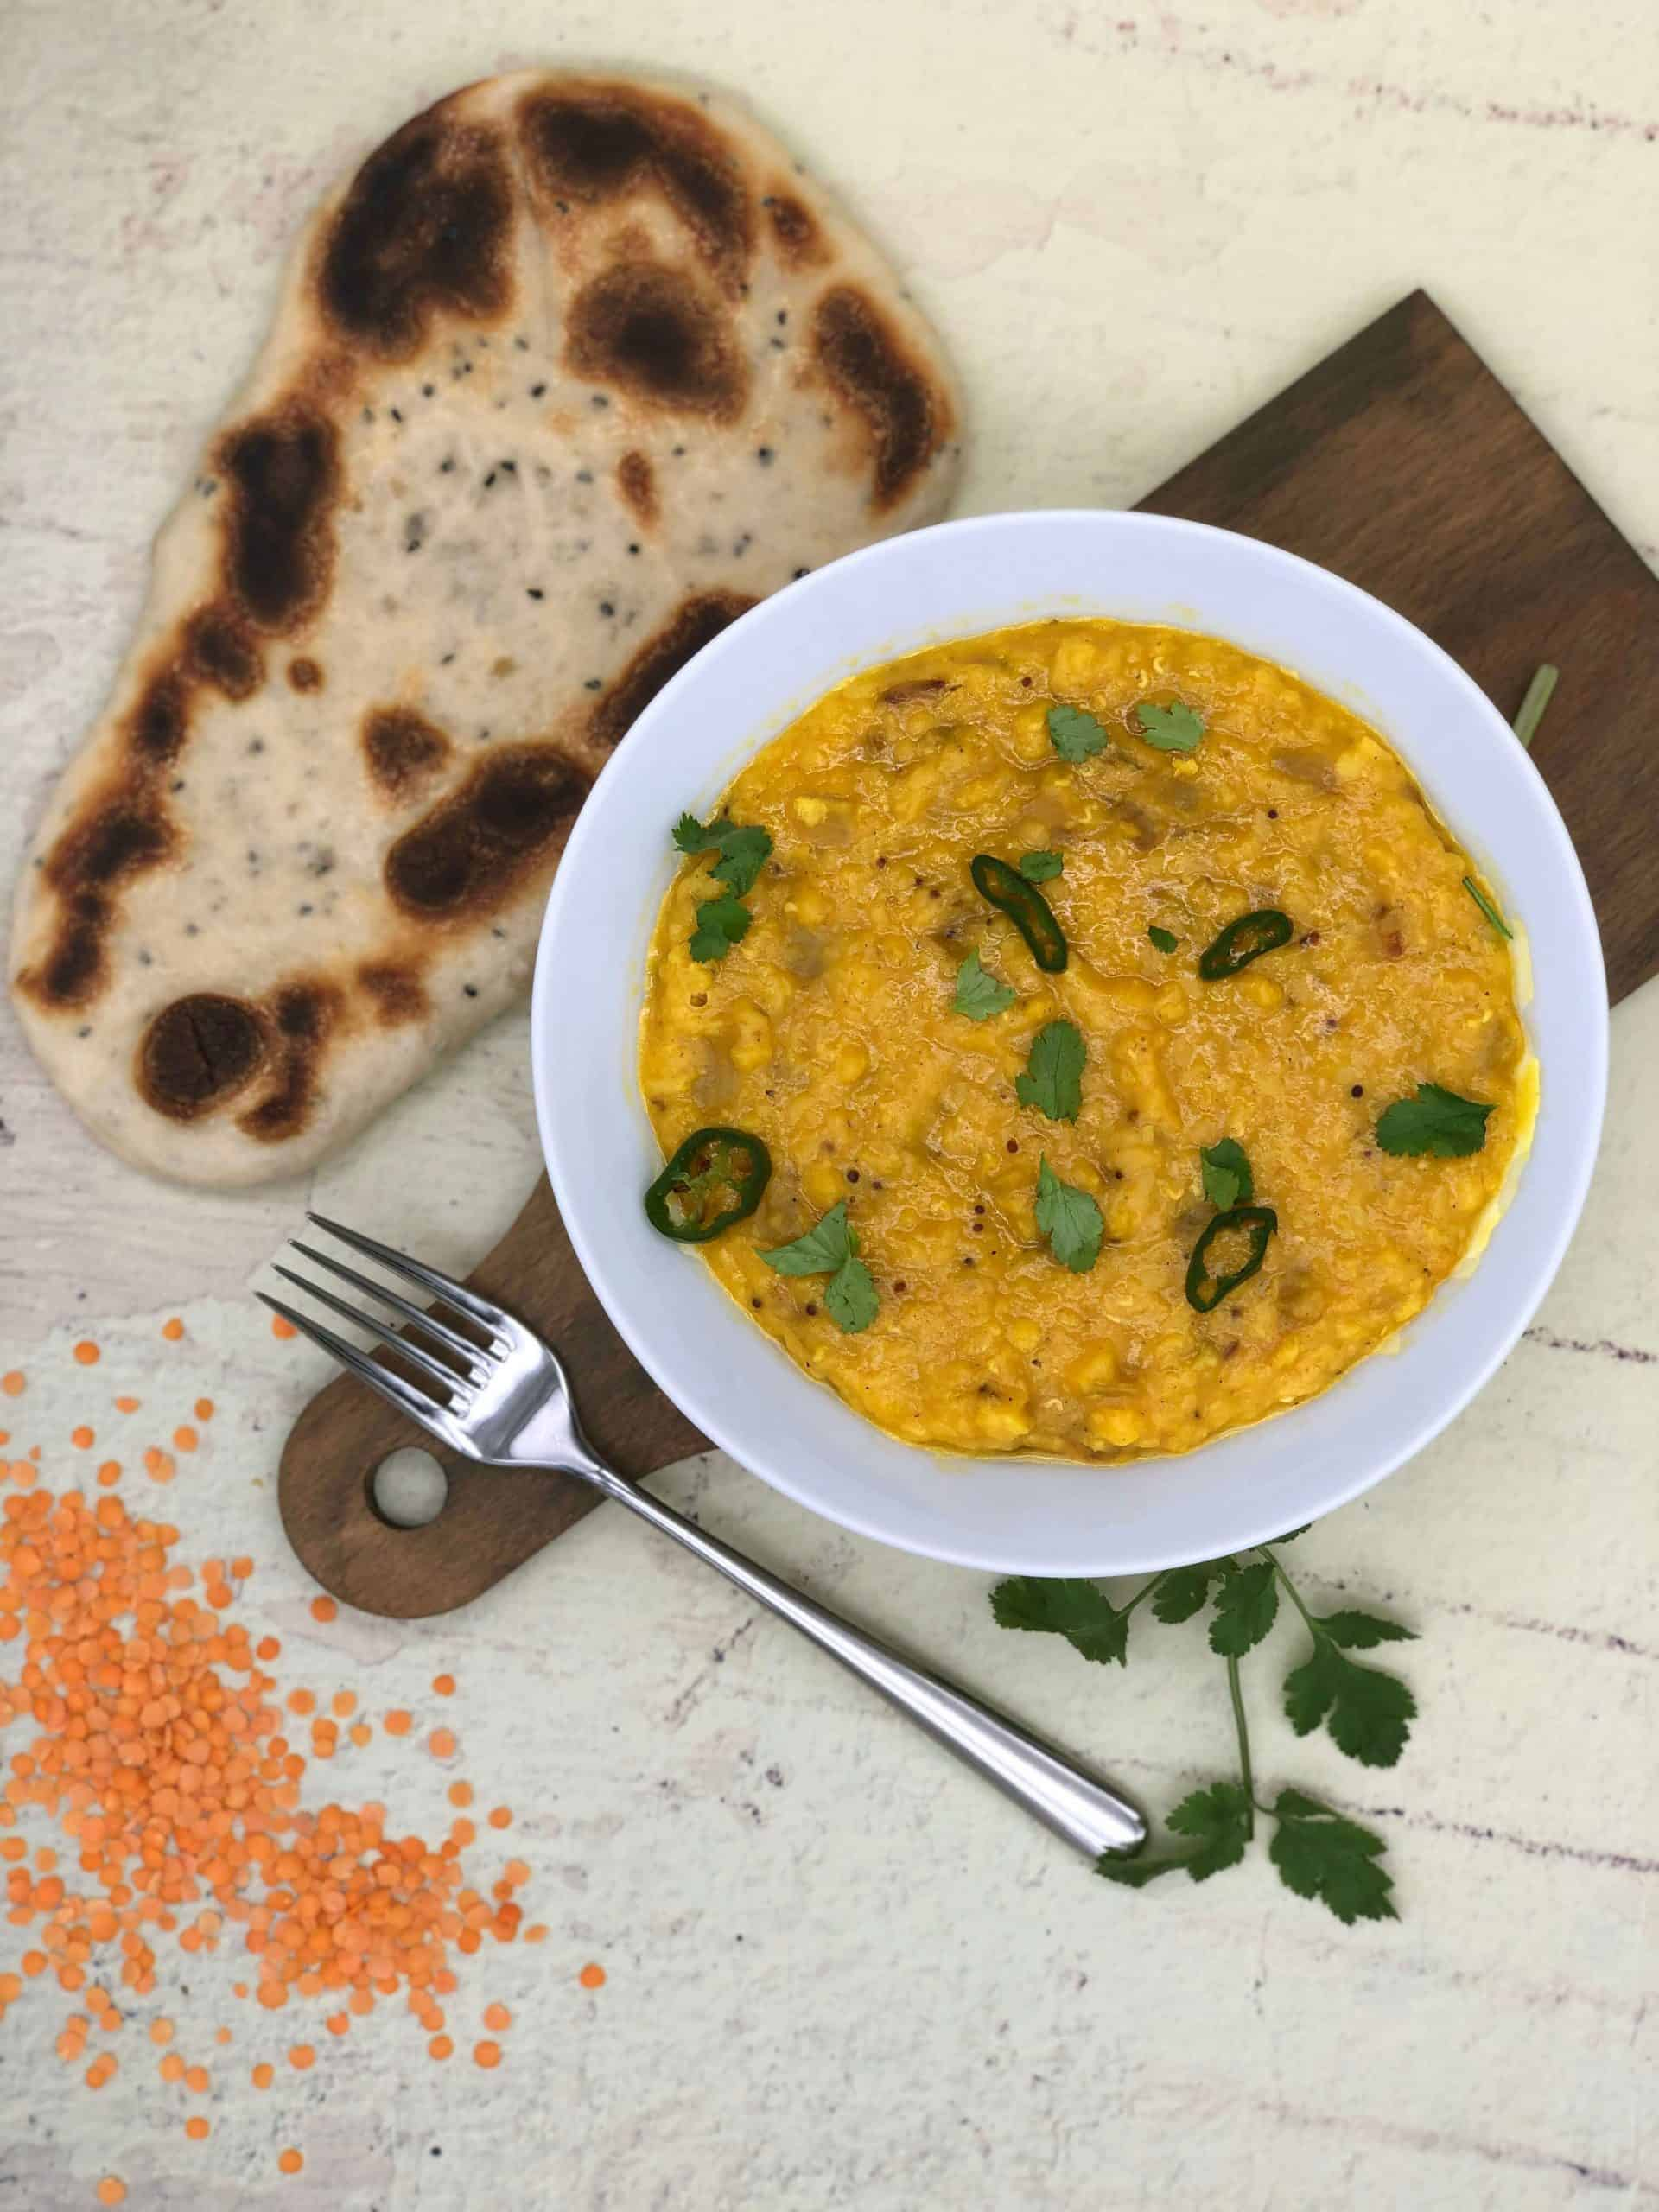 Best tarka dhal with naan bread and lentils